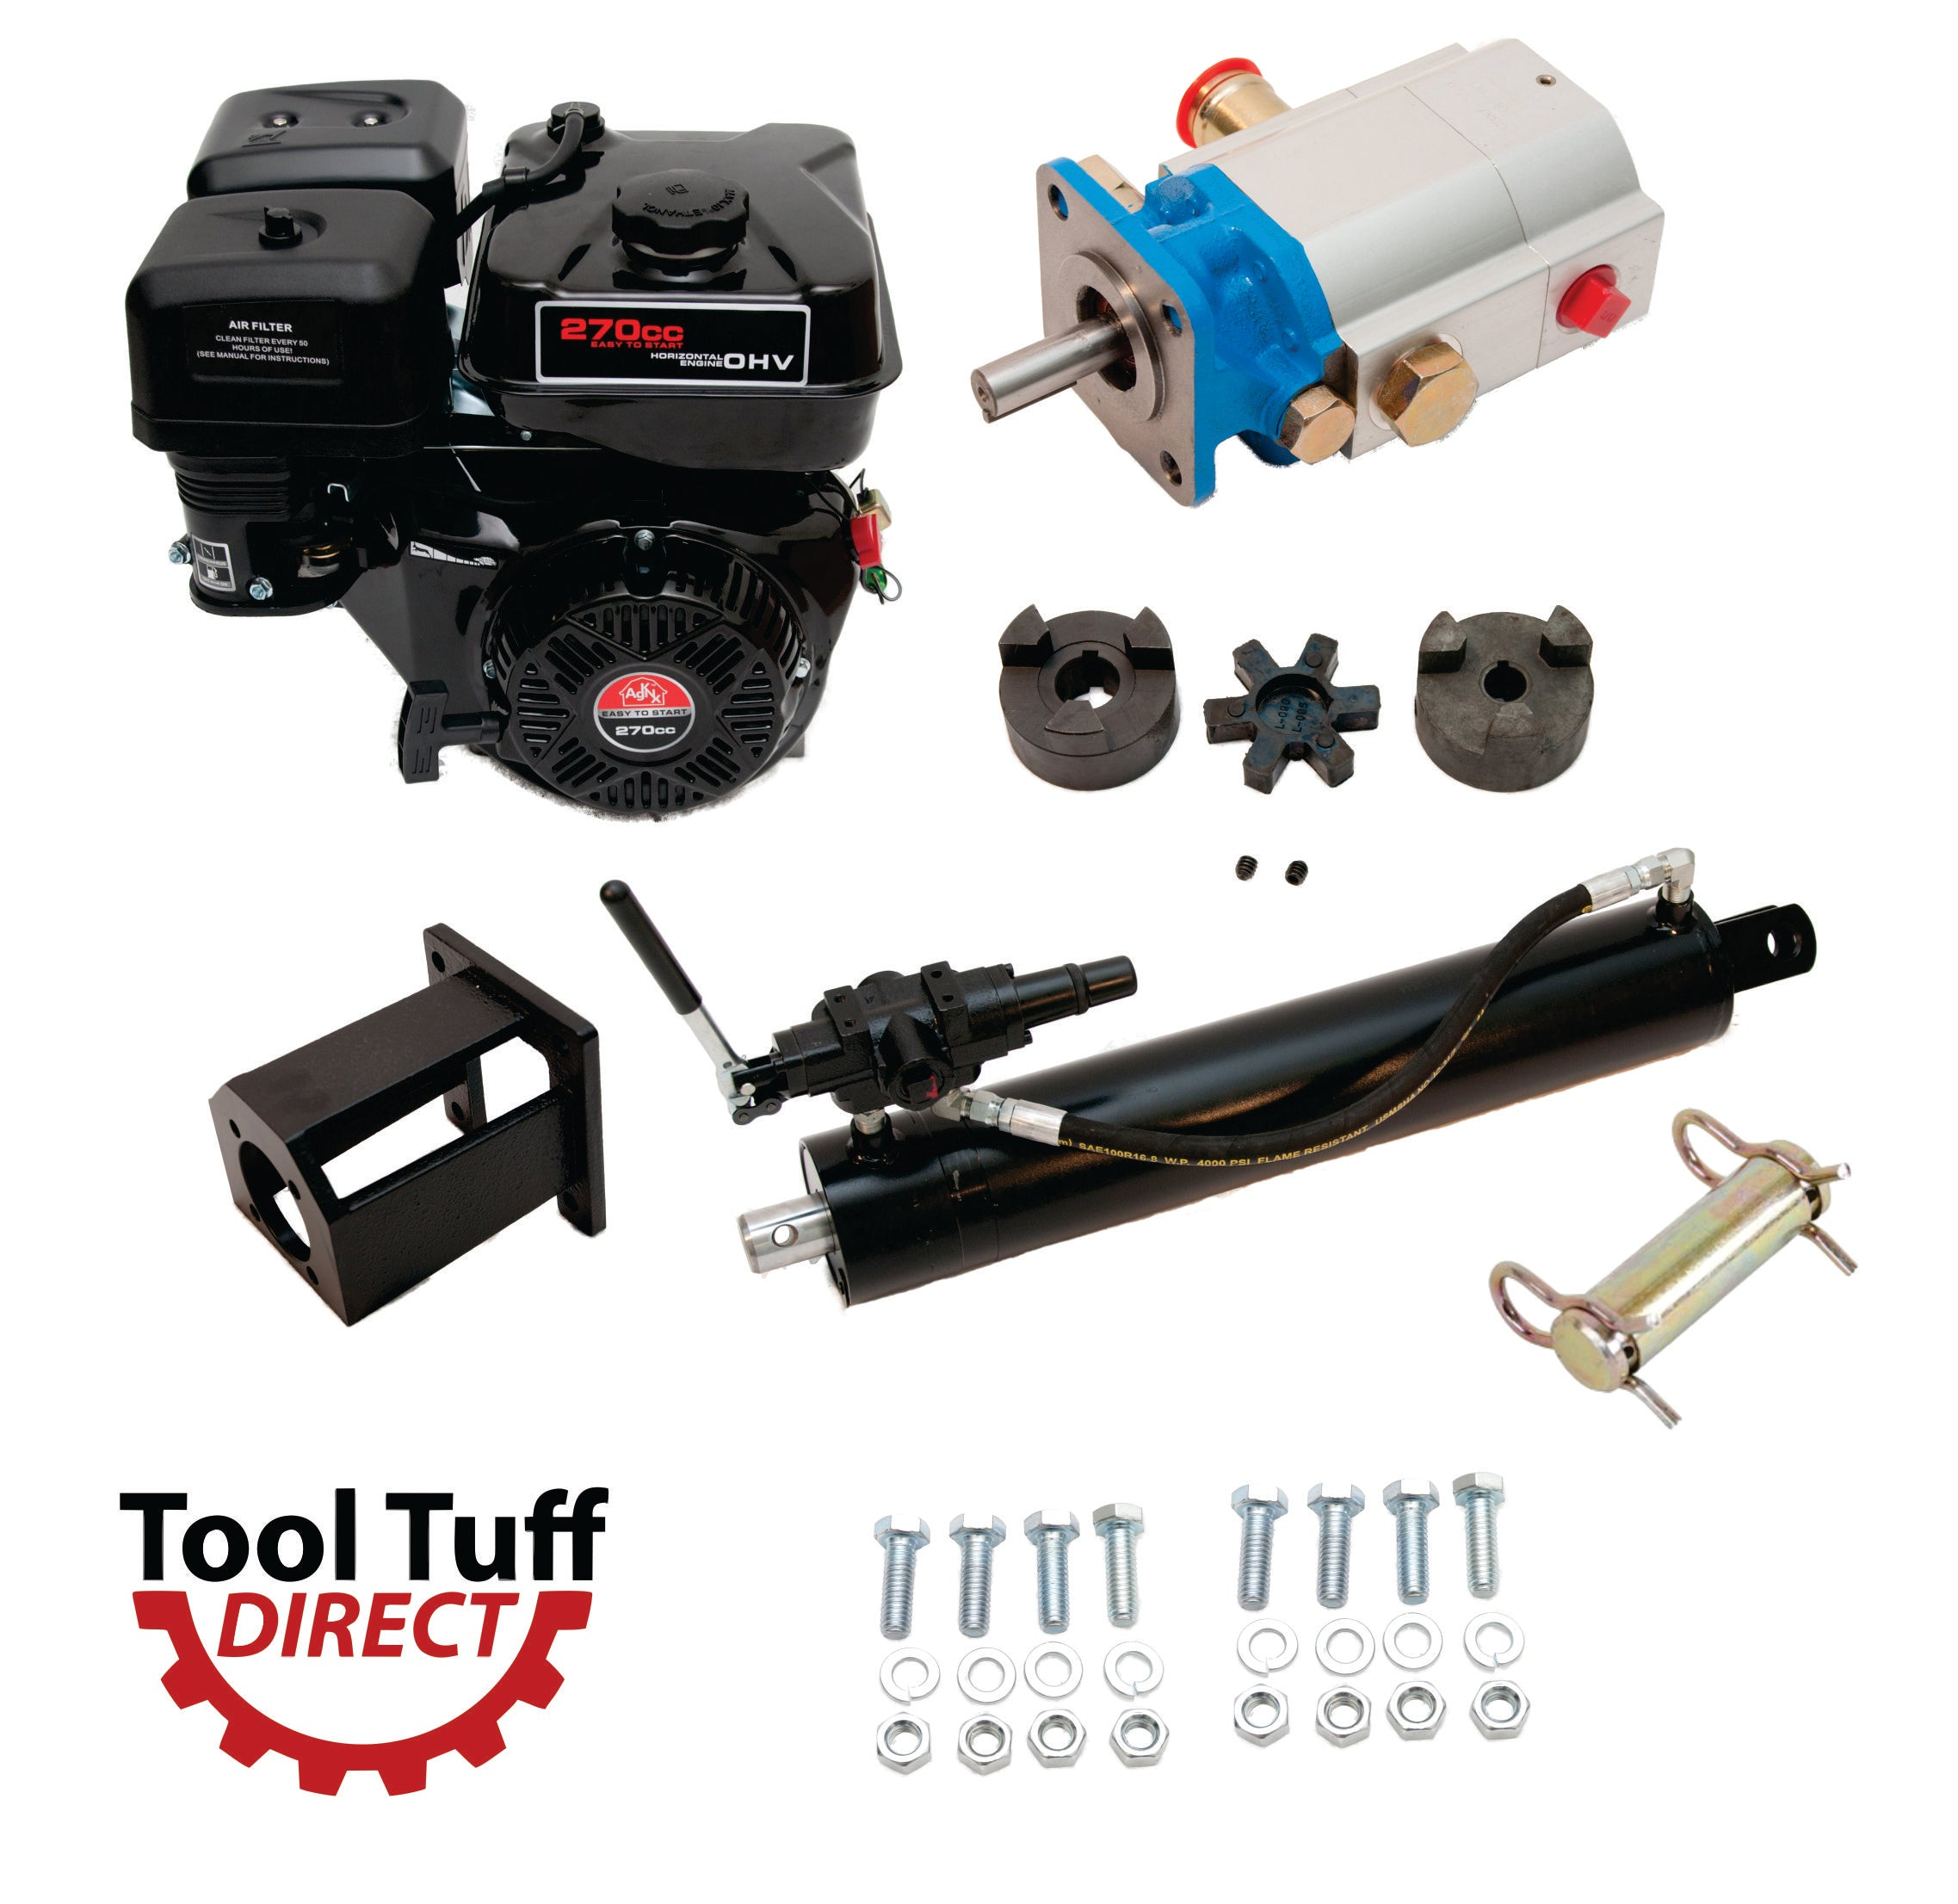 Tool Tuff Log Splitter Build Kit Electric Start 9 Hp Engine 16 Gpm 8 Diagram And Parts List For Briggs Stratton Allproducts Pump Detent Valve Mount Bolts 45 Welded Cylinder Fittings